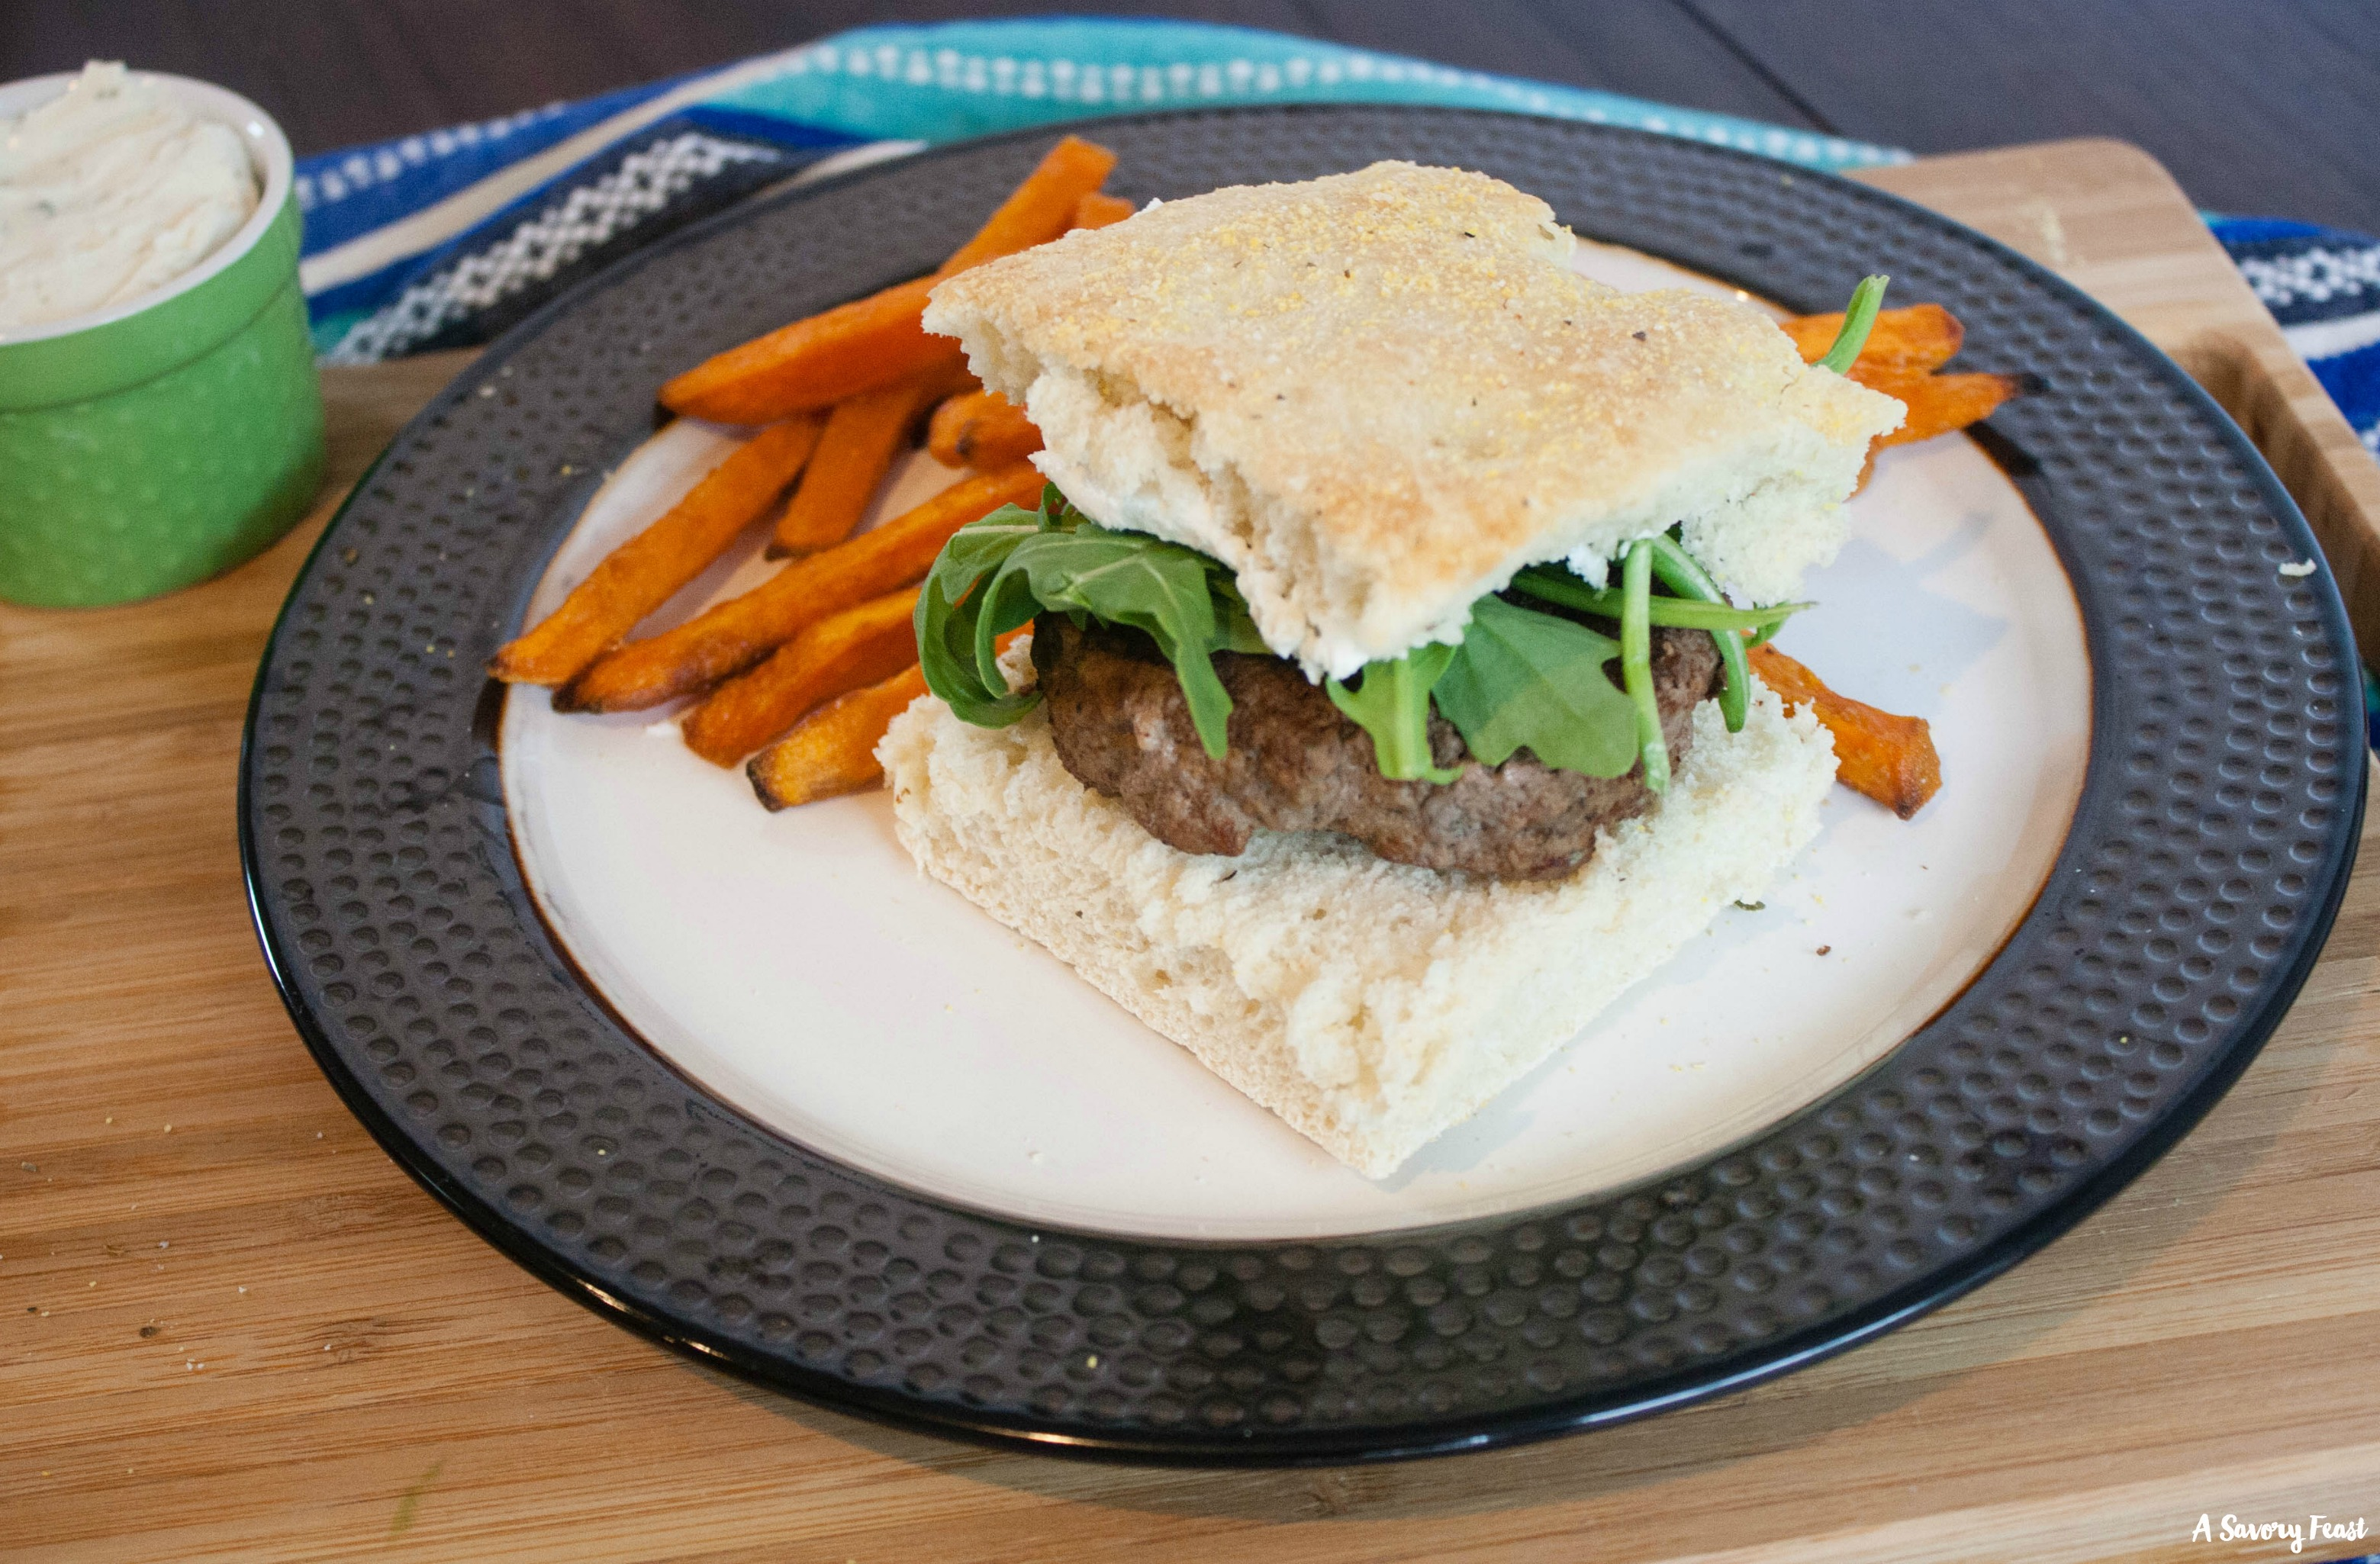 Need an idea for dinner tonight? Try these Goat Cheese and Herb Burgers with Homemade Focaccia Buns